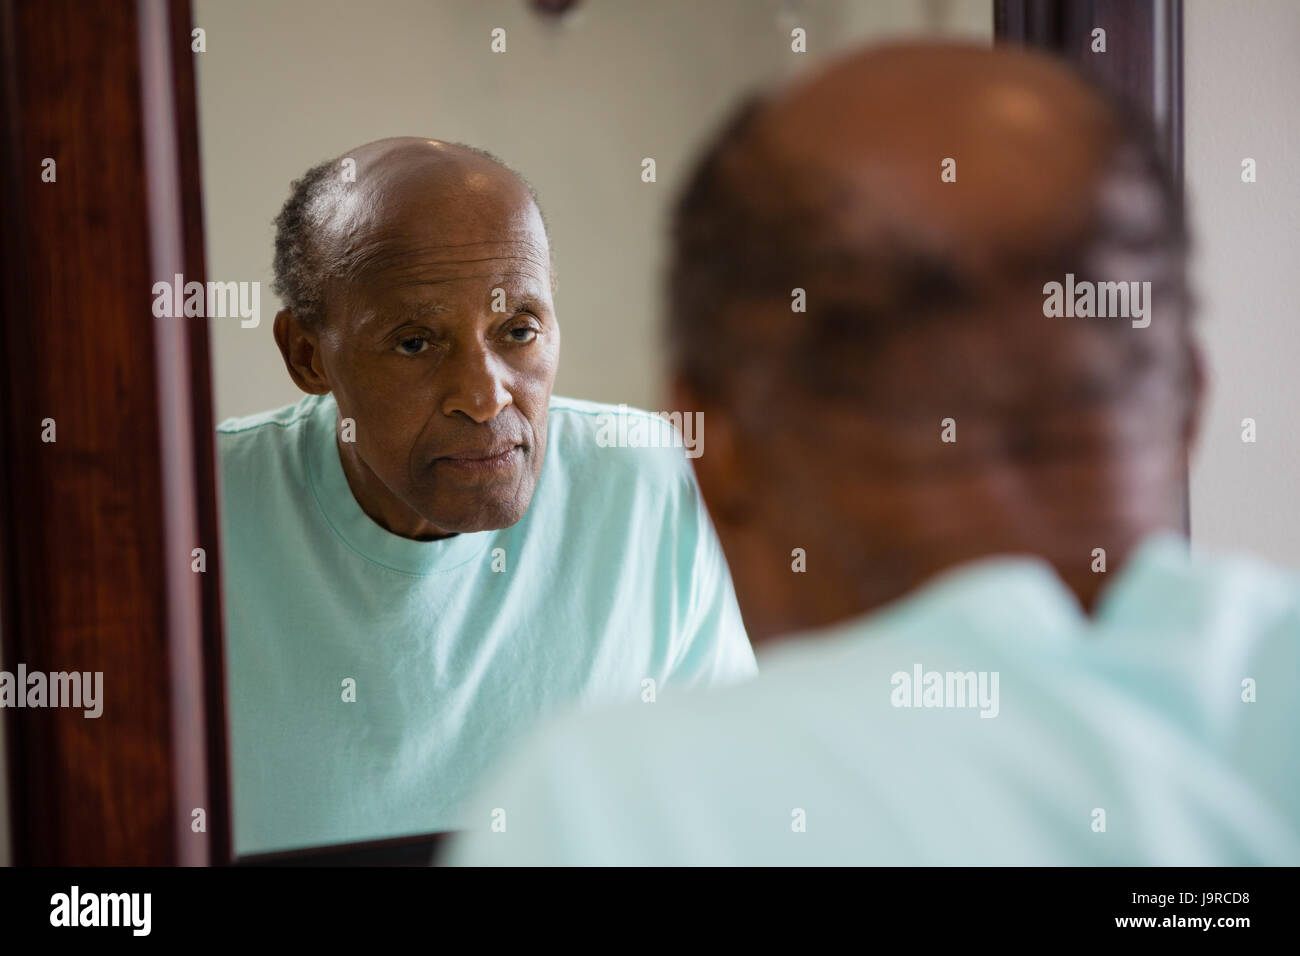 Mirror with reflection of concerned senior man in bathroom - Stock Image